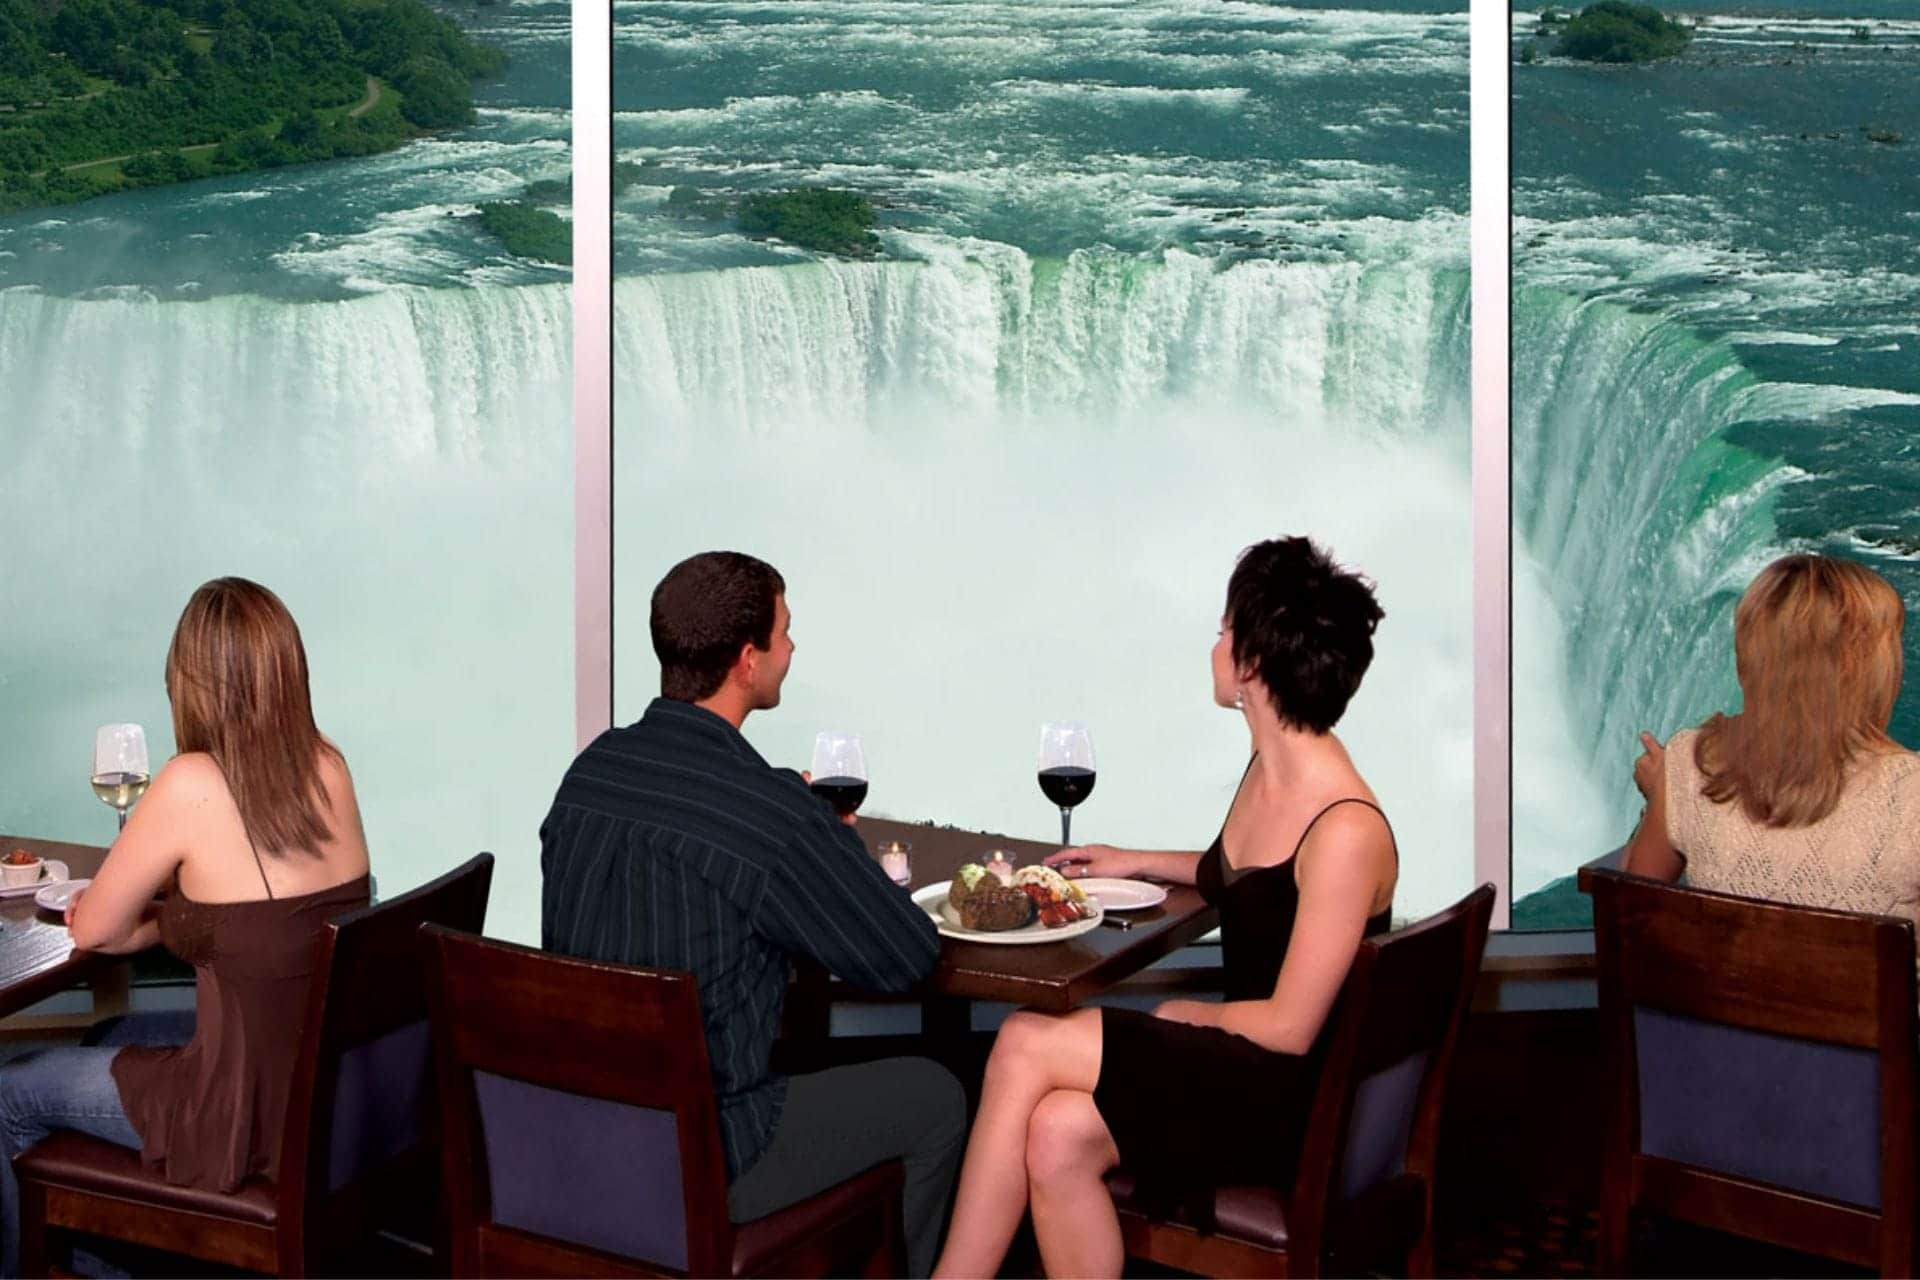 niagara falls | niagara falls cruise | niagara cruises | cruise trip for niagara falls | best cruise bus in niagara falls | niagara on the lake | journey behind the falls | visiting niagara falls | niagara family vacation | niagara falls canada attractions tour